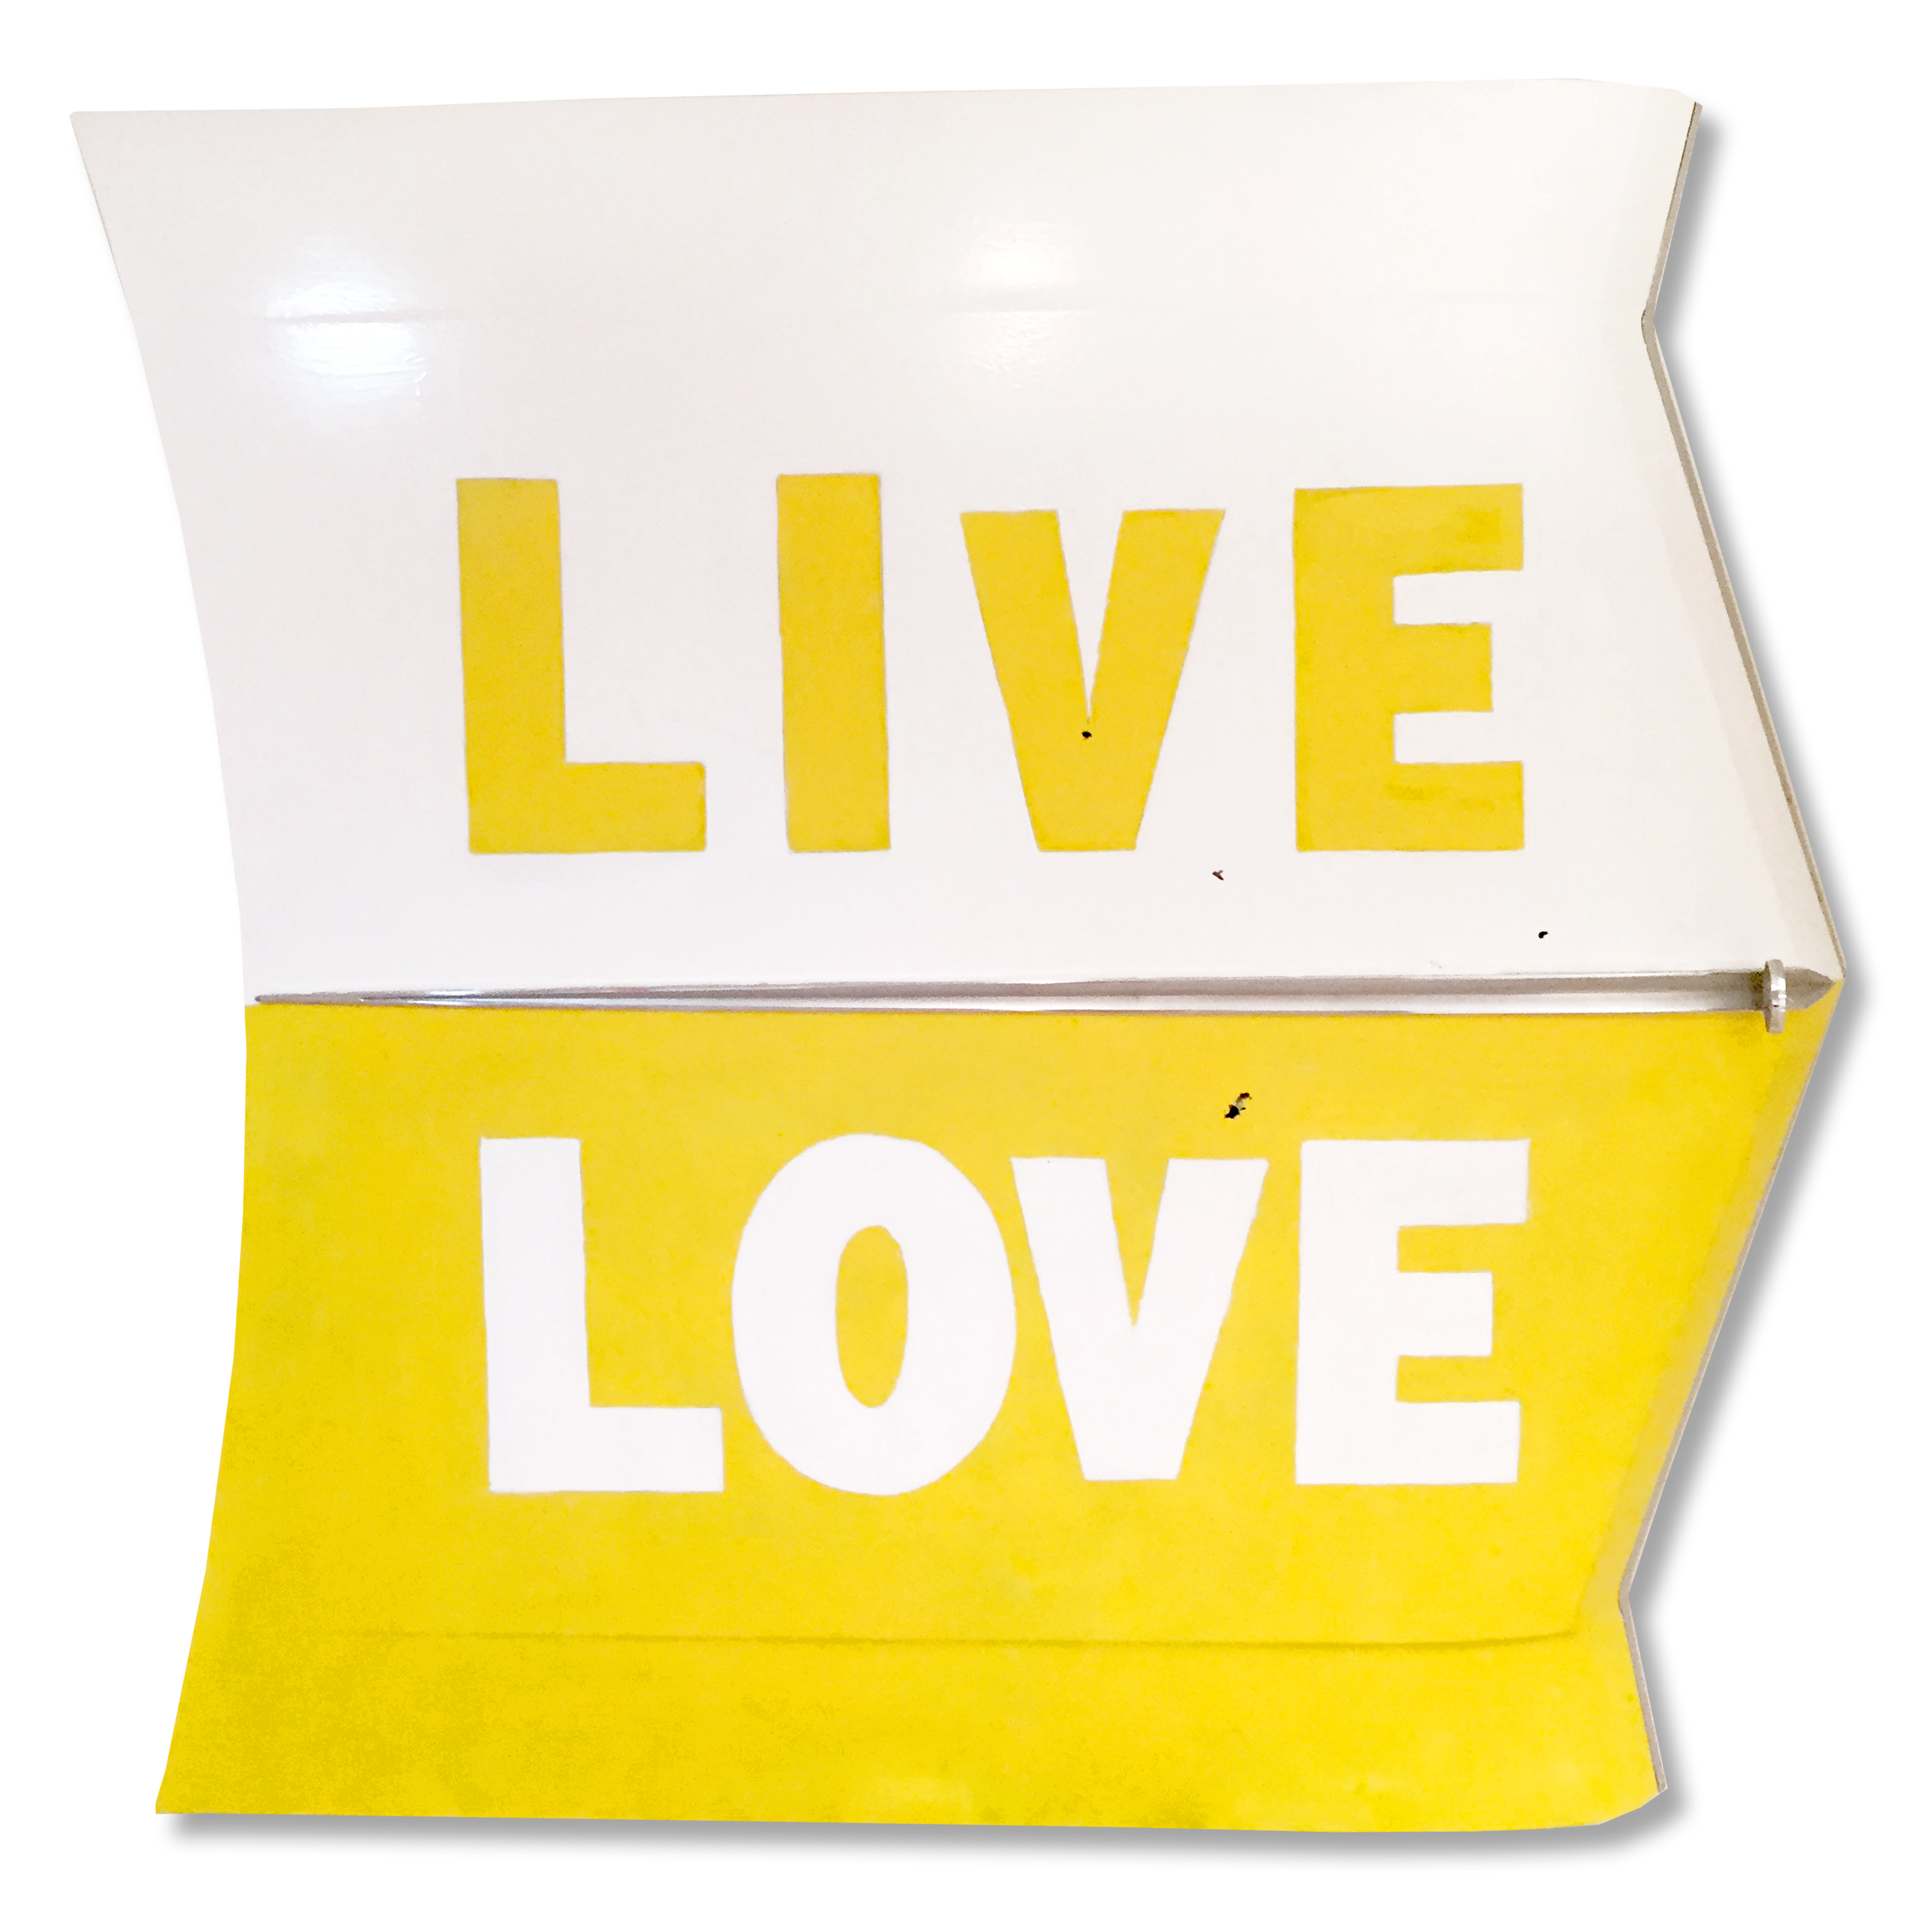 LIVE LOVE is acrylic and oil over metal.  The hood is from a 1960's BUICK which was both heavily chromed and heavily weathered.  LIVE LOVE is 9 inches deep, 56 inches wide and 52 inches high.